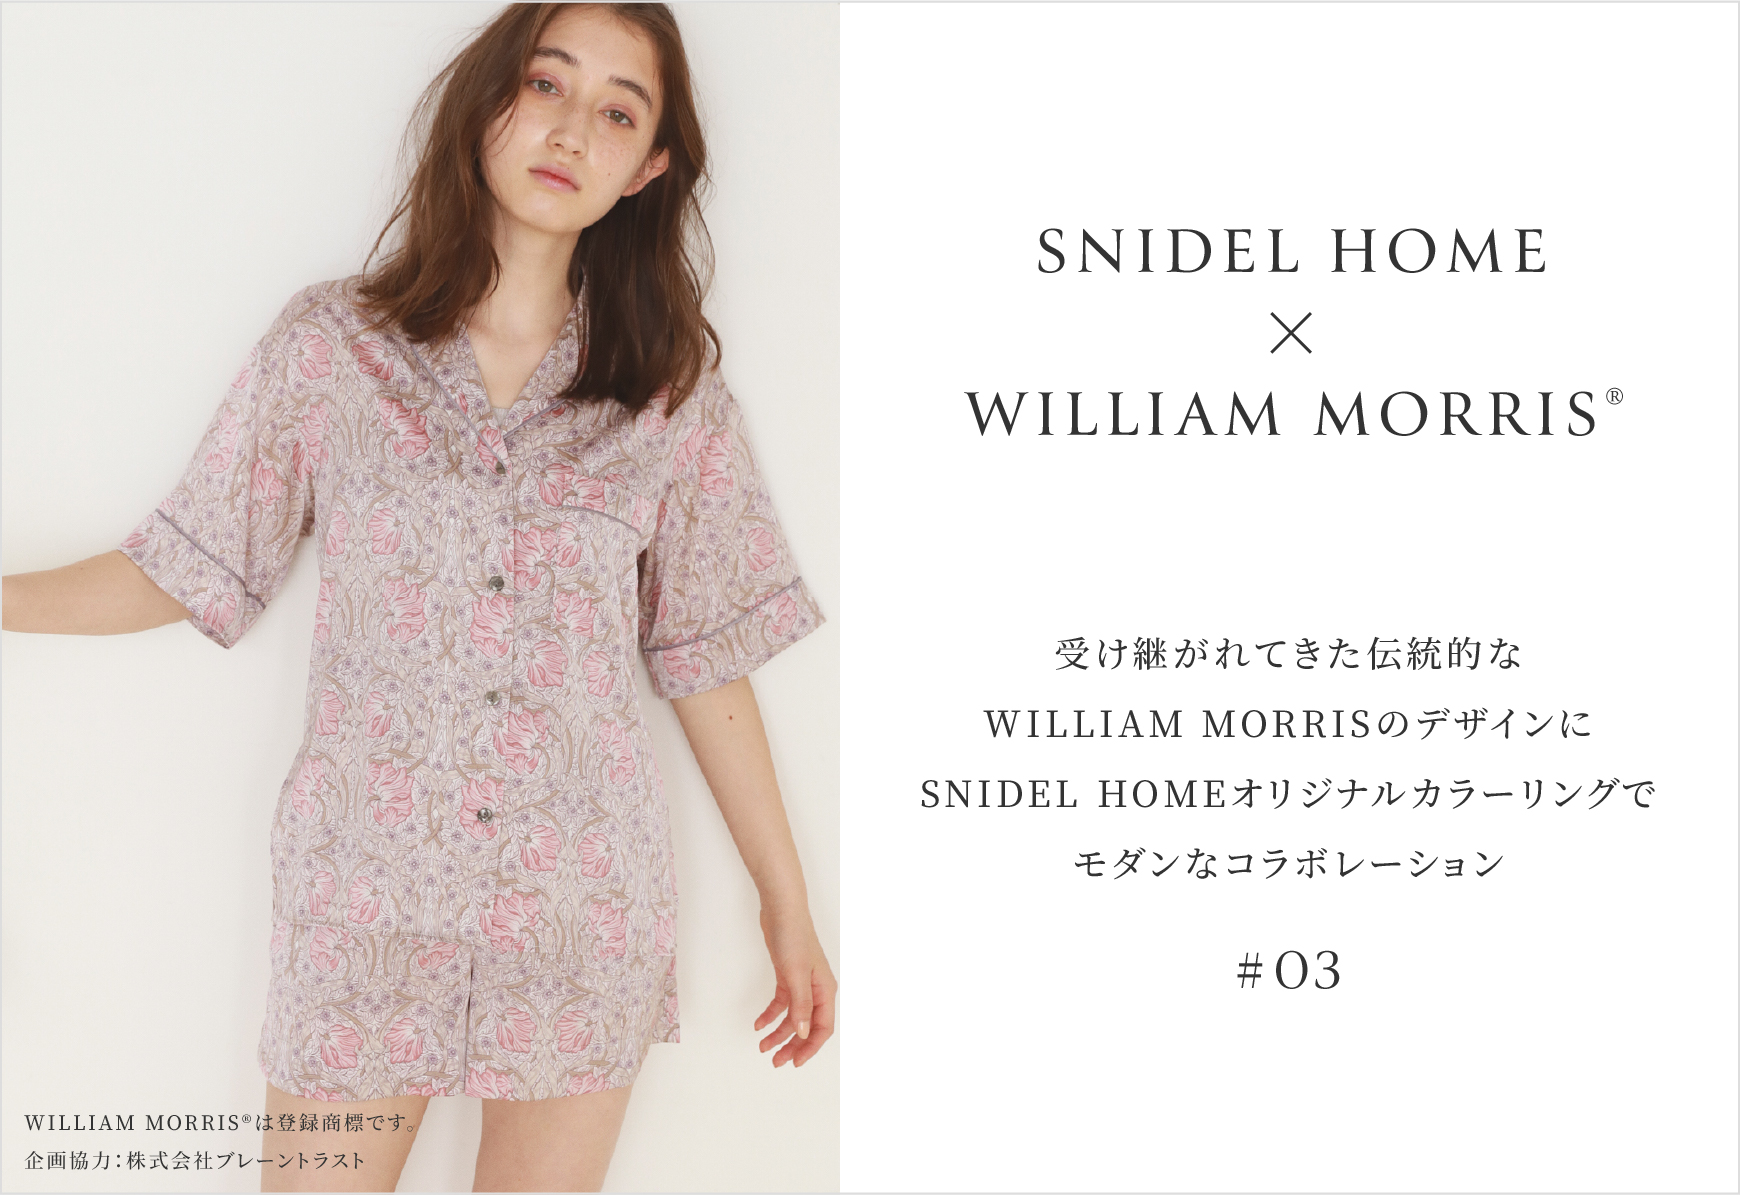 SNIDEL HOME SUMMER COLLECTION SNIDEL HOME WILLIAM MORRIS